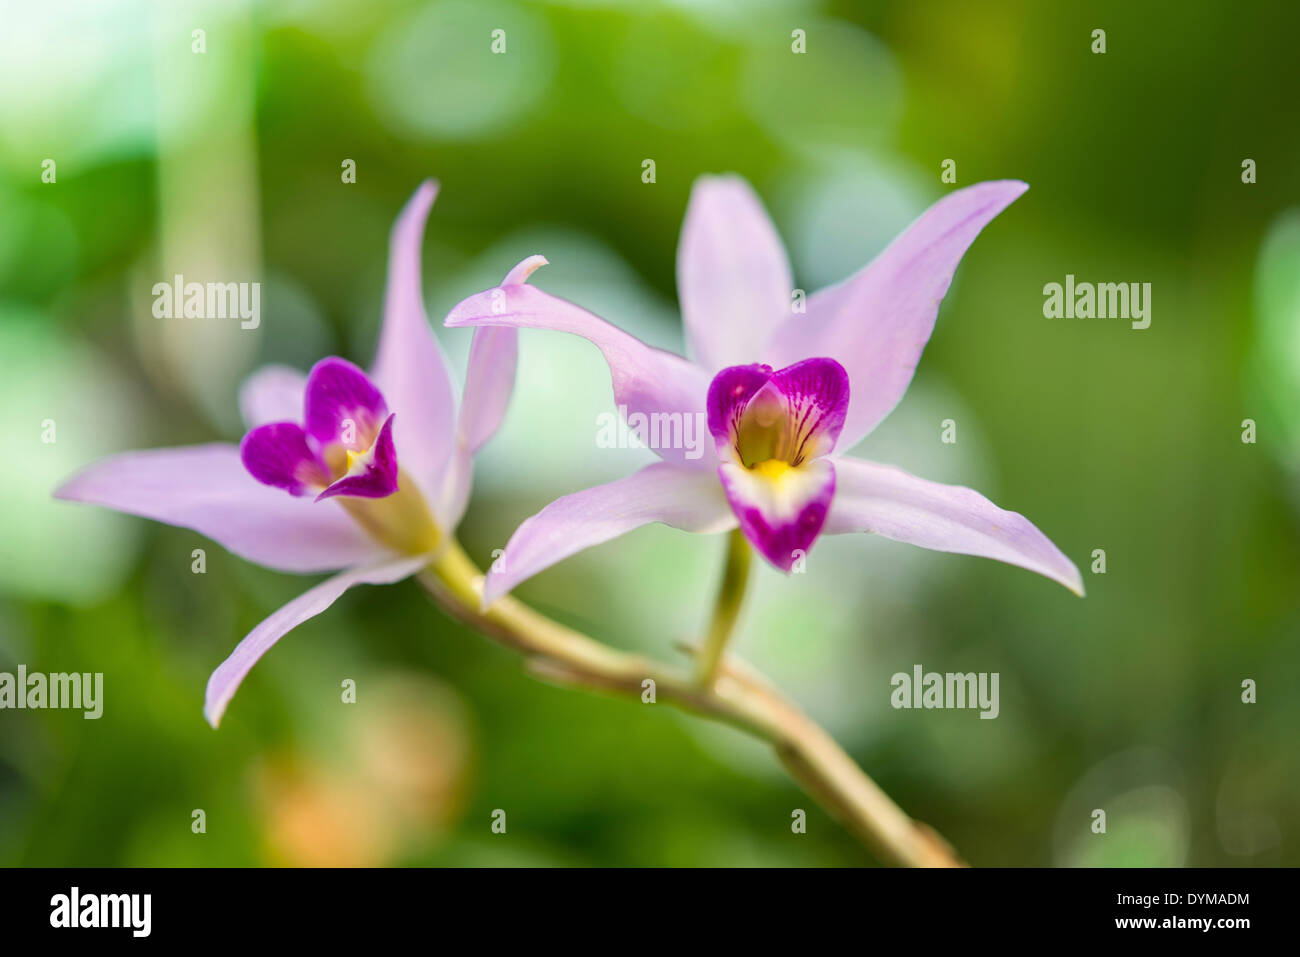 Pink Orchid (Orchidaceae) - Stock Image